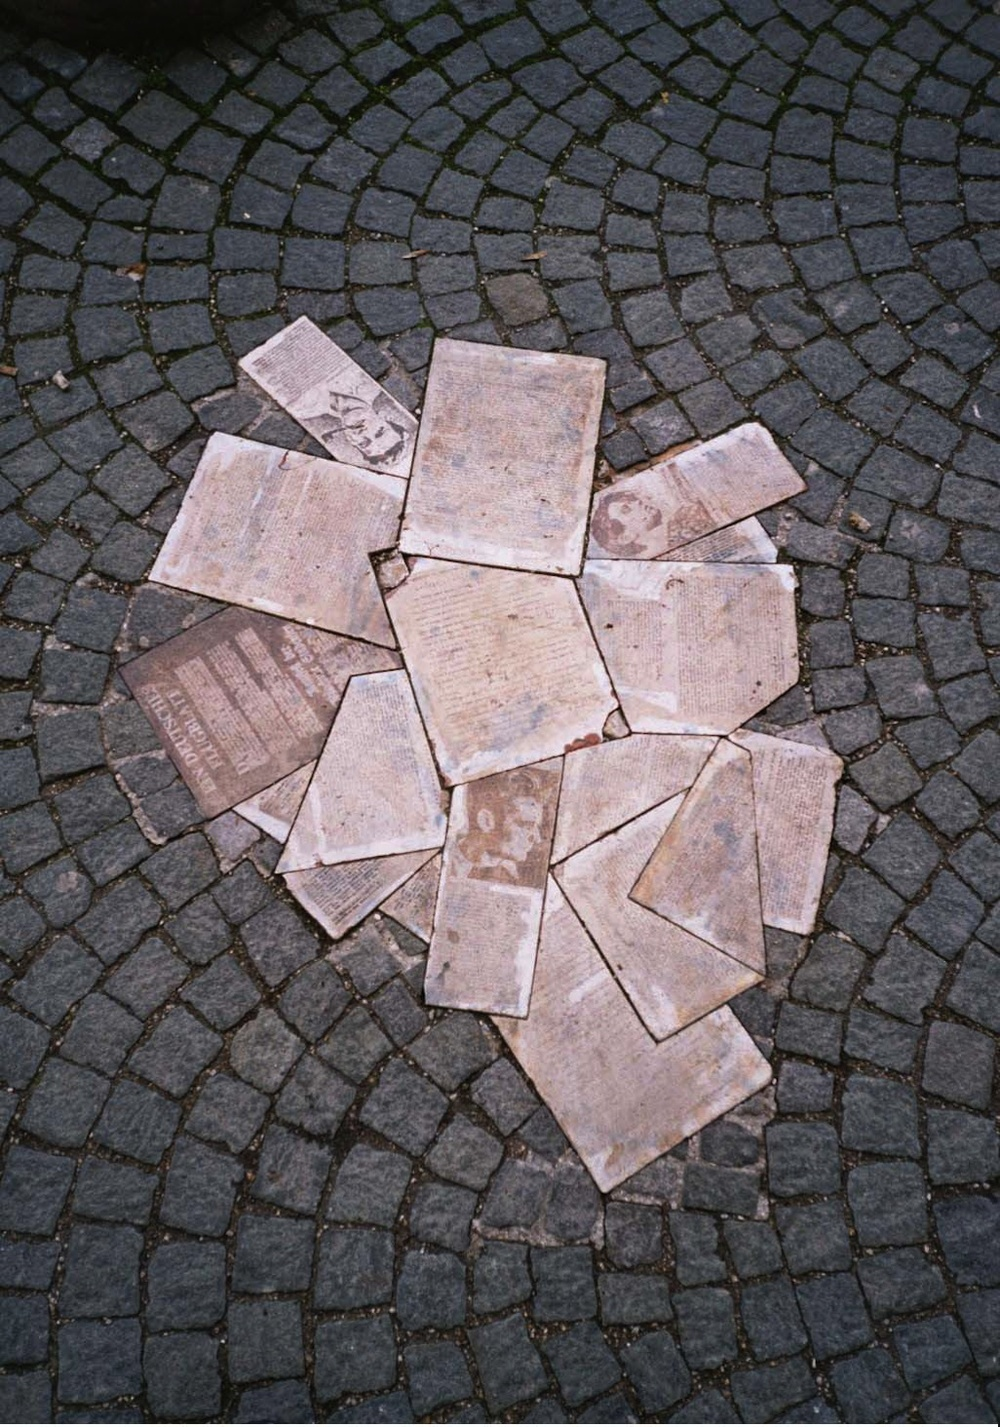 Click photo to download. Caption: A monument to Hans and Sophie Scholl and the Holocaust resistance group White Rose at the University of Munich in Bavaria, Germany. Credit: Gryffindor via Wikimedia Commons.